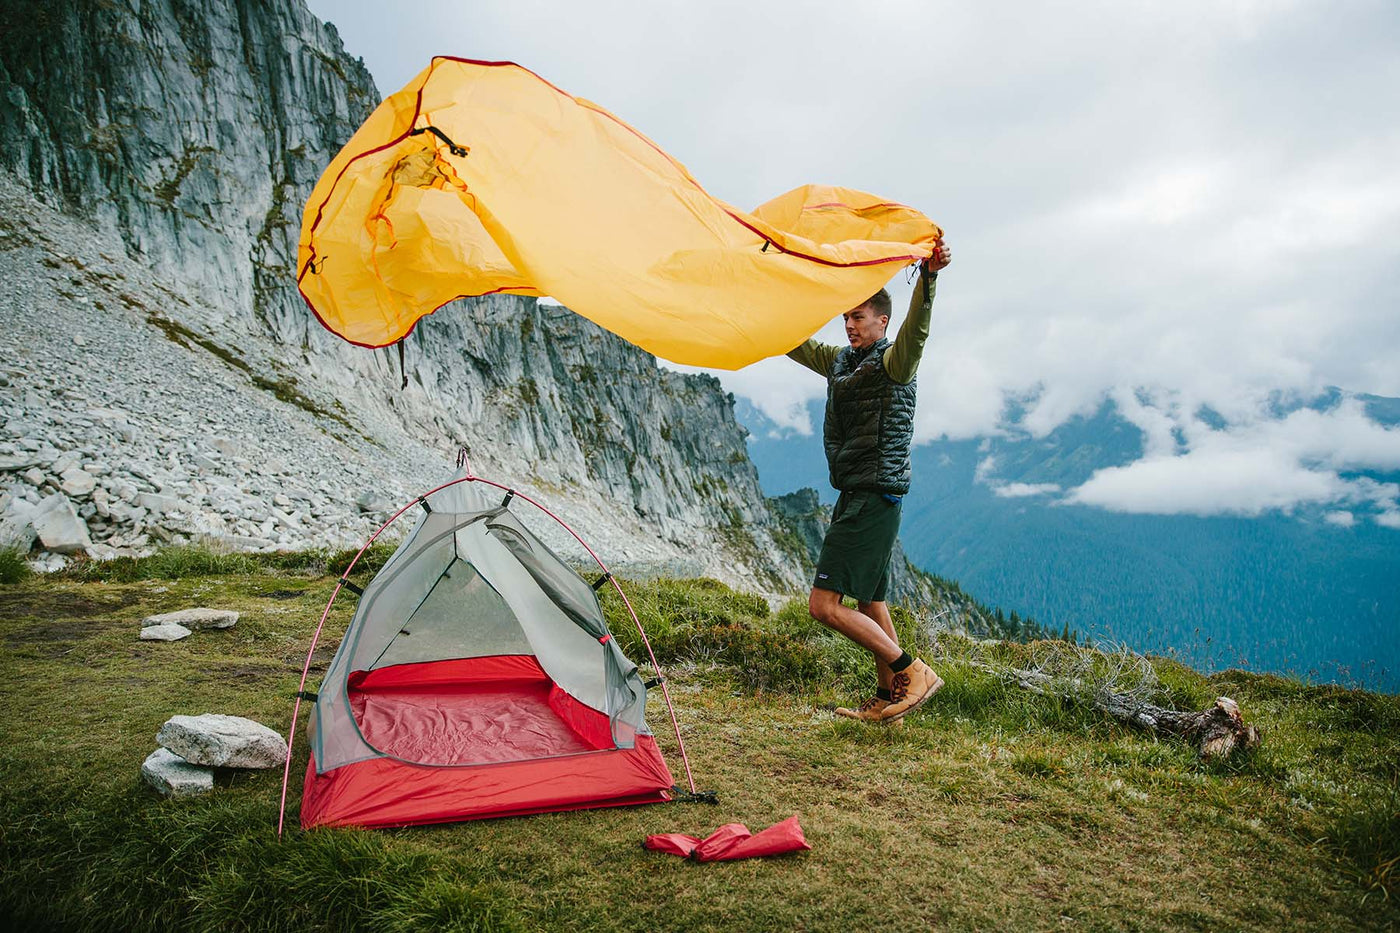 Paria Gear FAQ: How do I care for my tent?